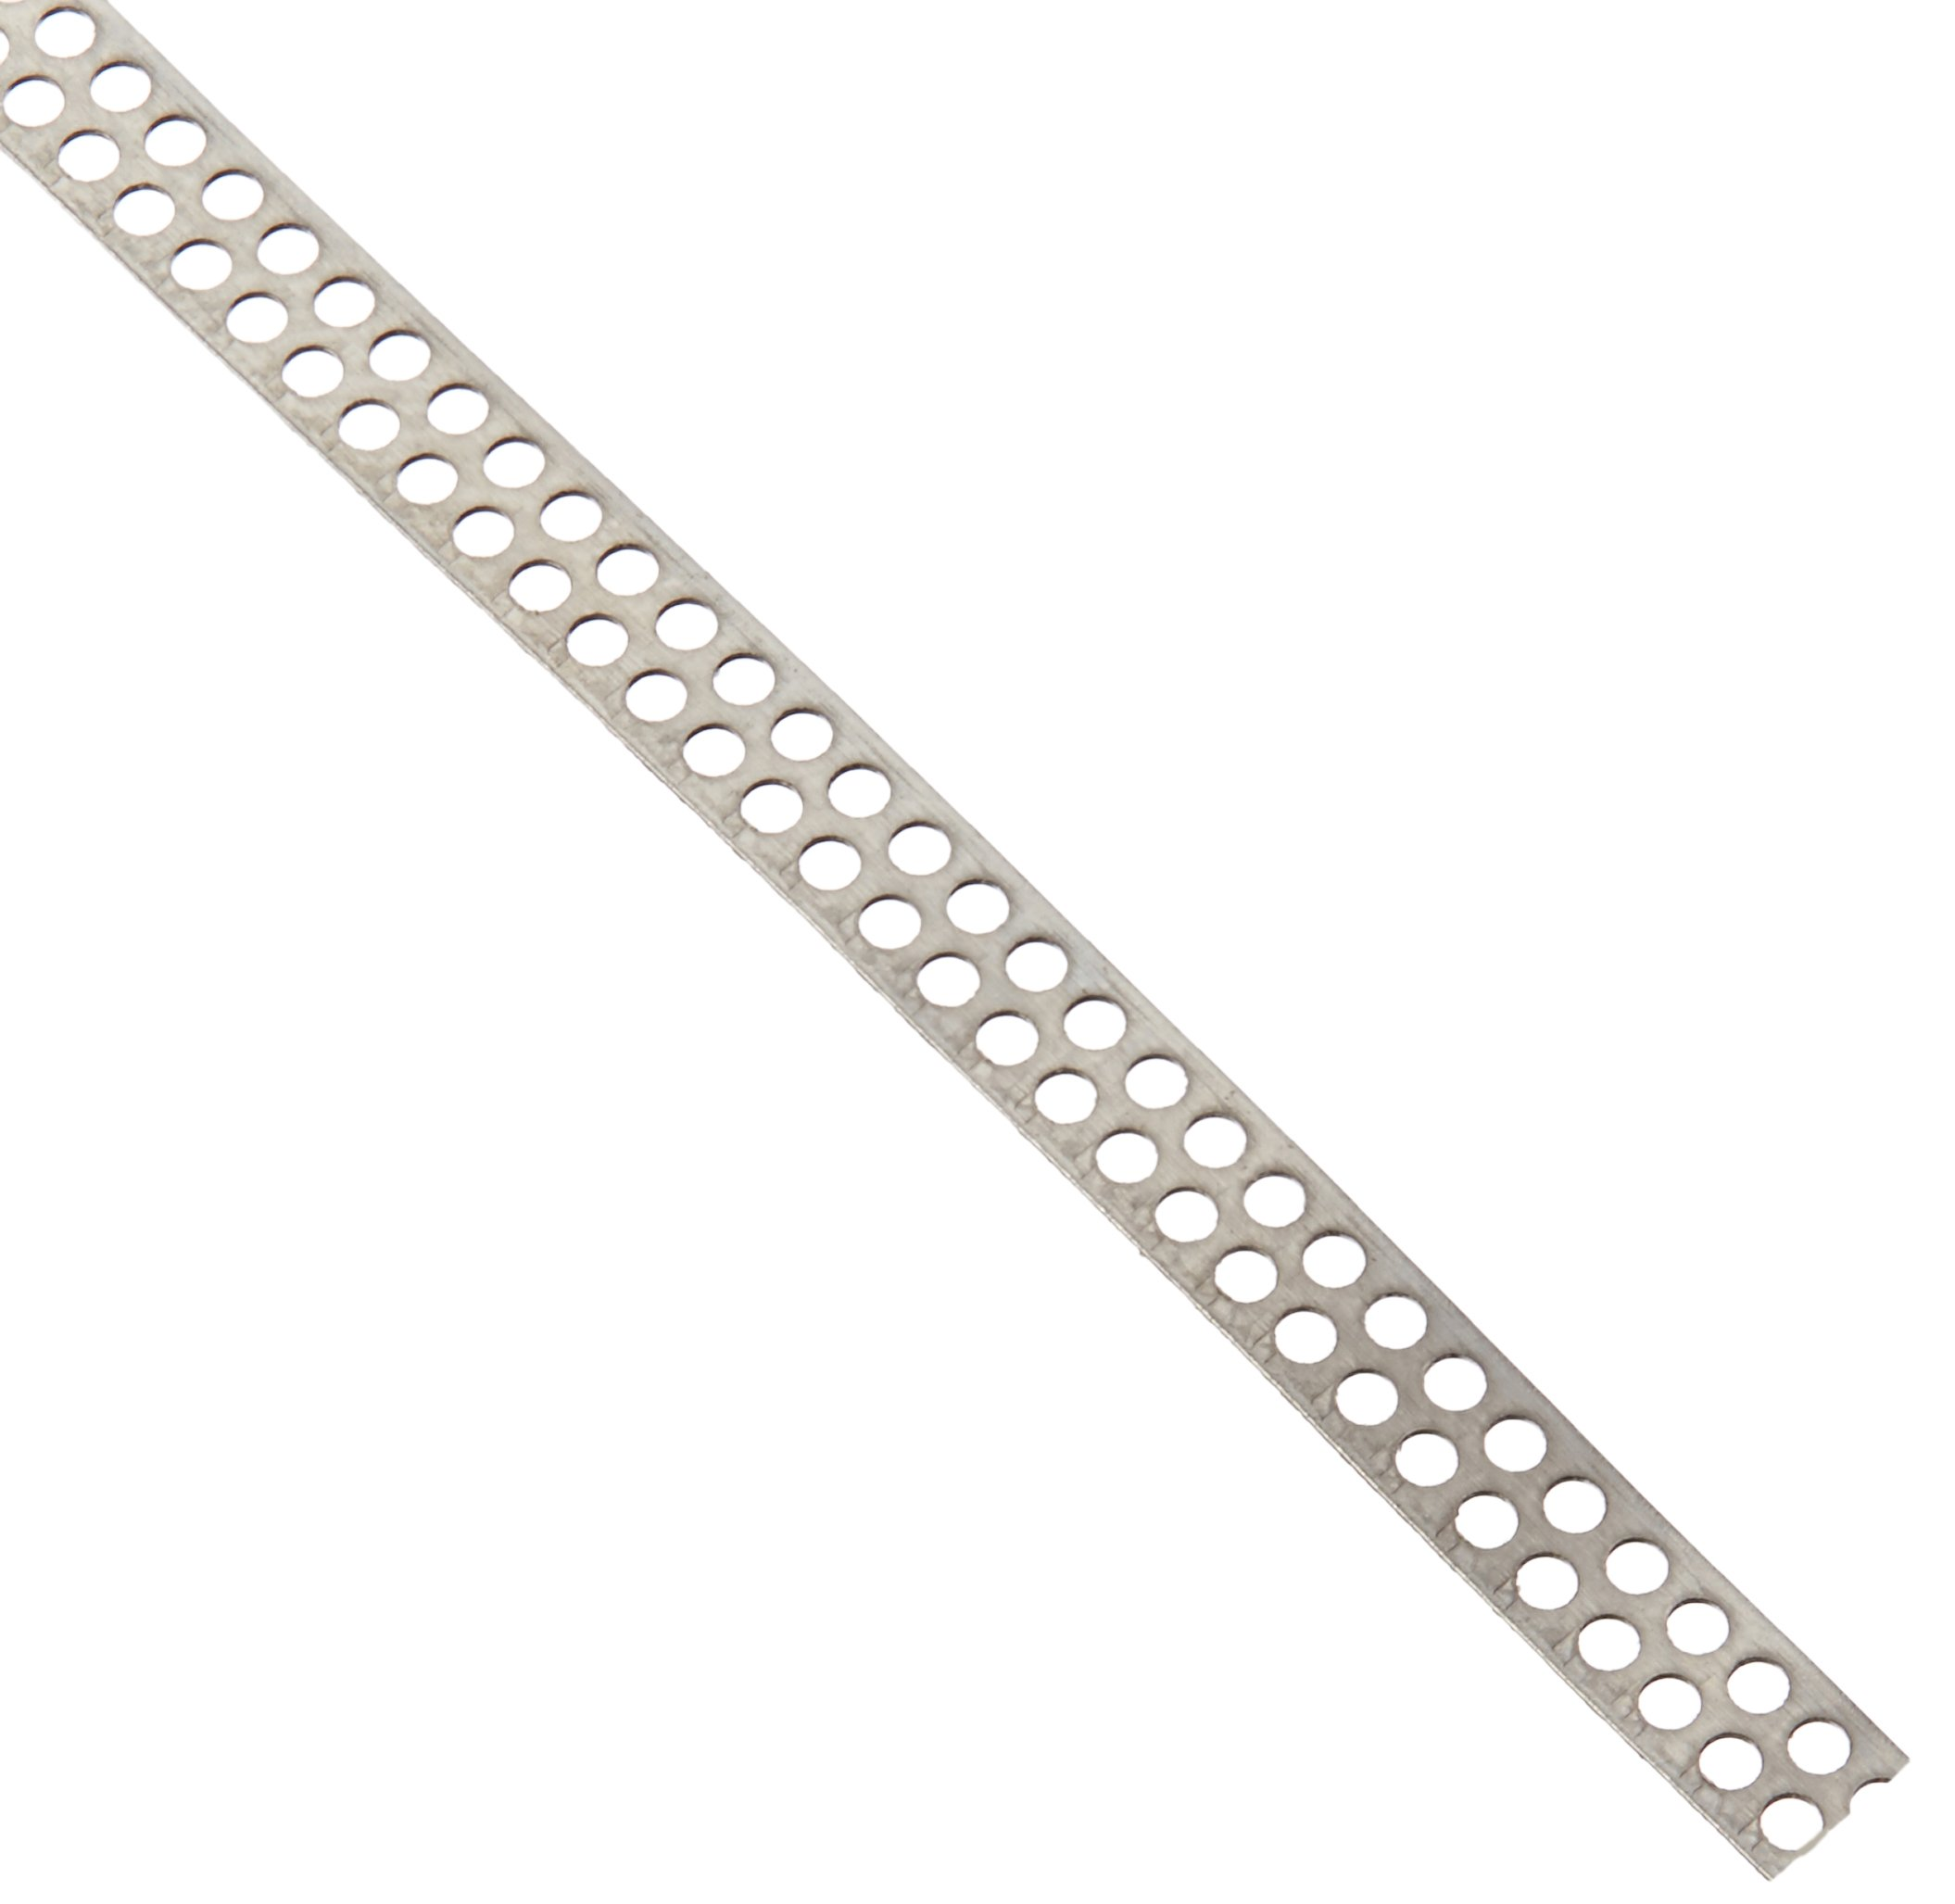 Pulpdent SPL-P PerfoMat Perforated Strip Roll, Stainless Steel